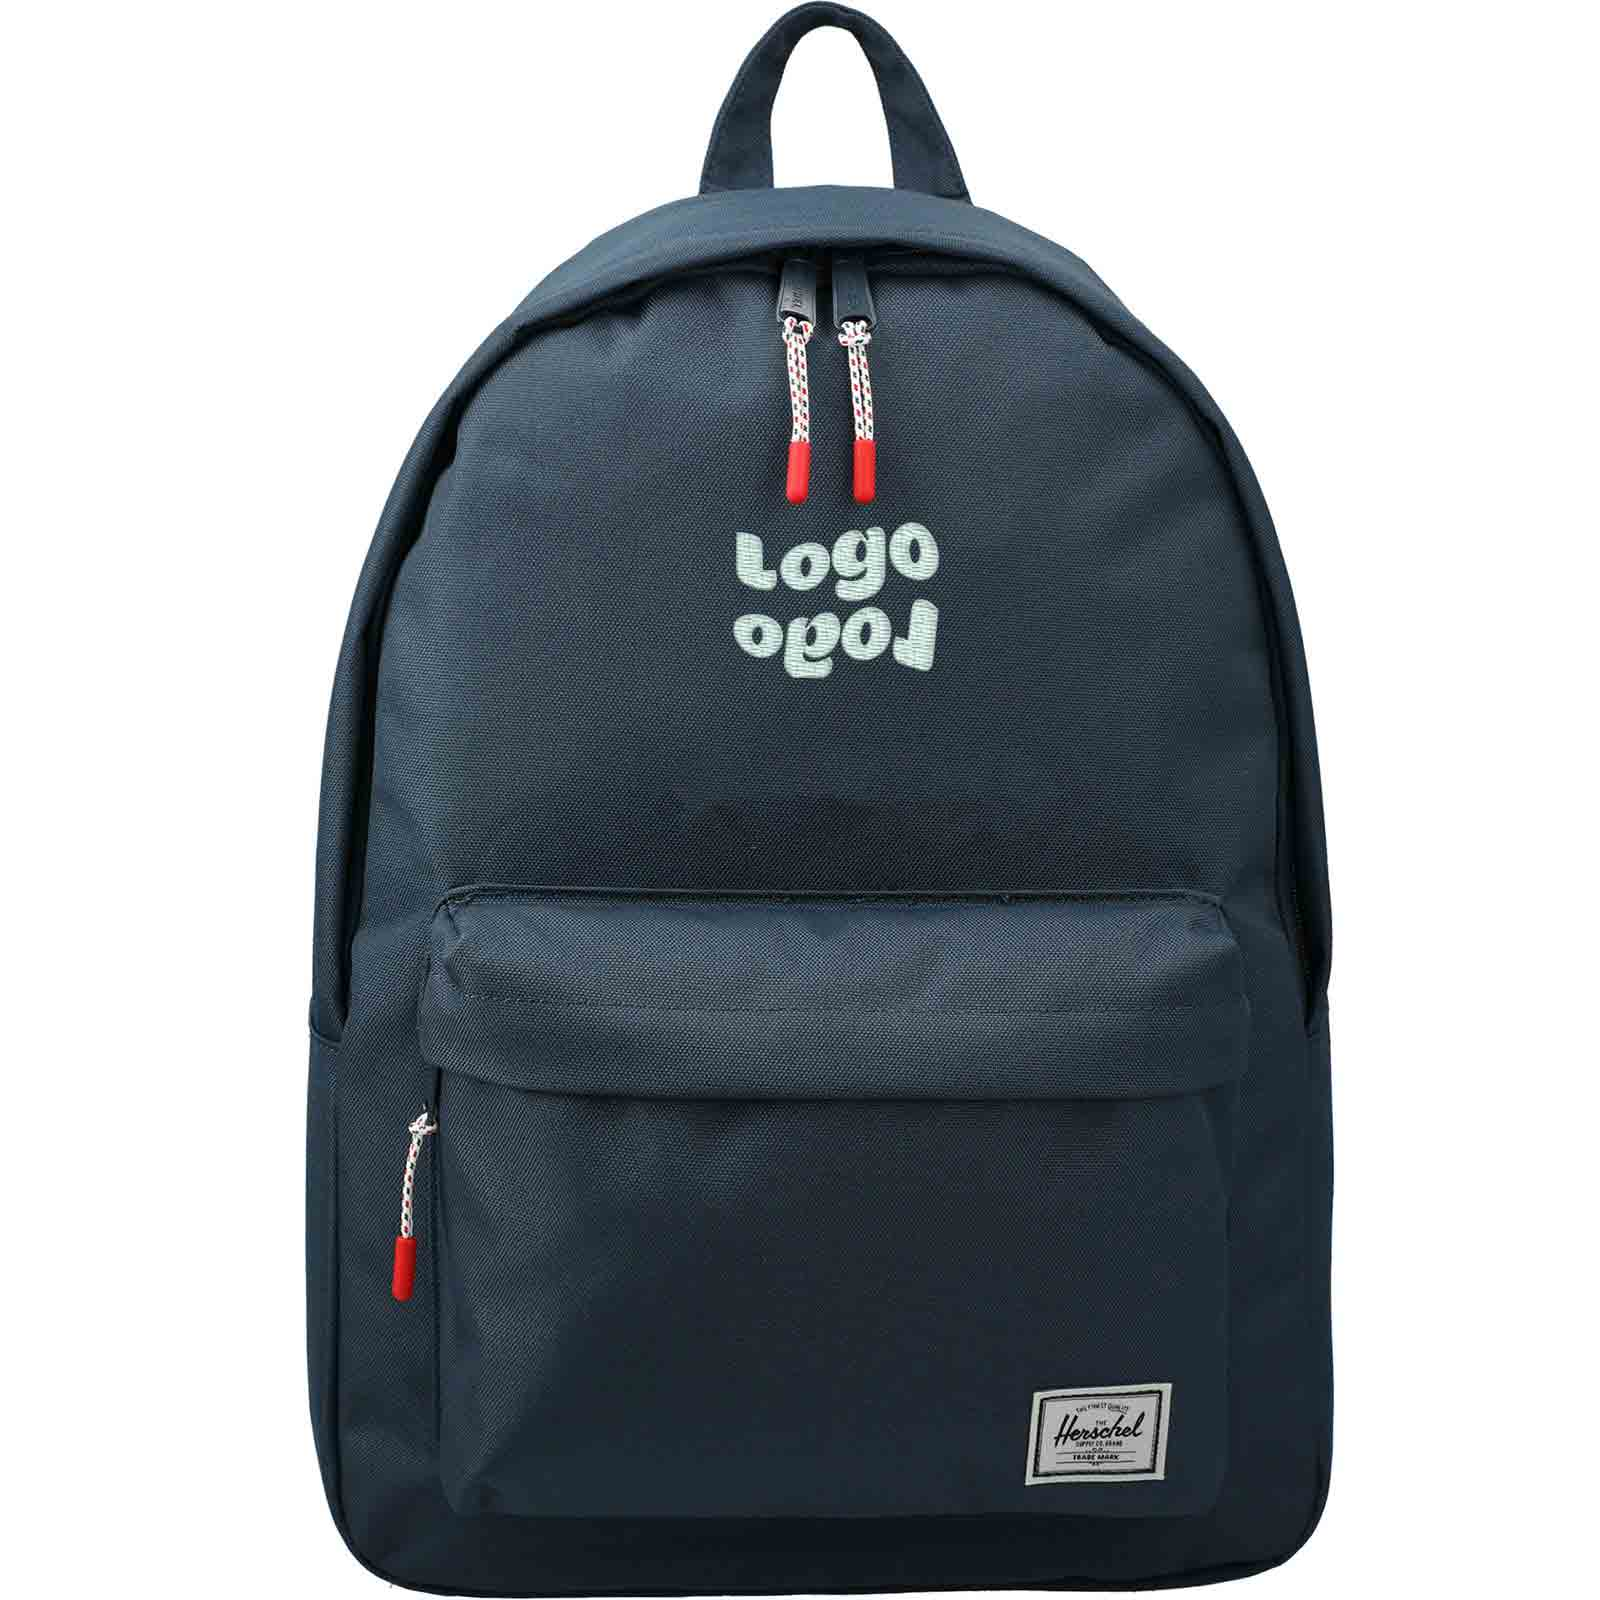 269624 classic backpack one location embroidered up to 4k stitches centered in panel above front pocket 4 50 h x 3 75 w